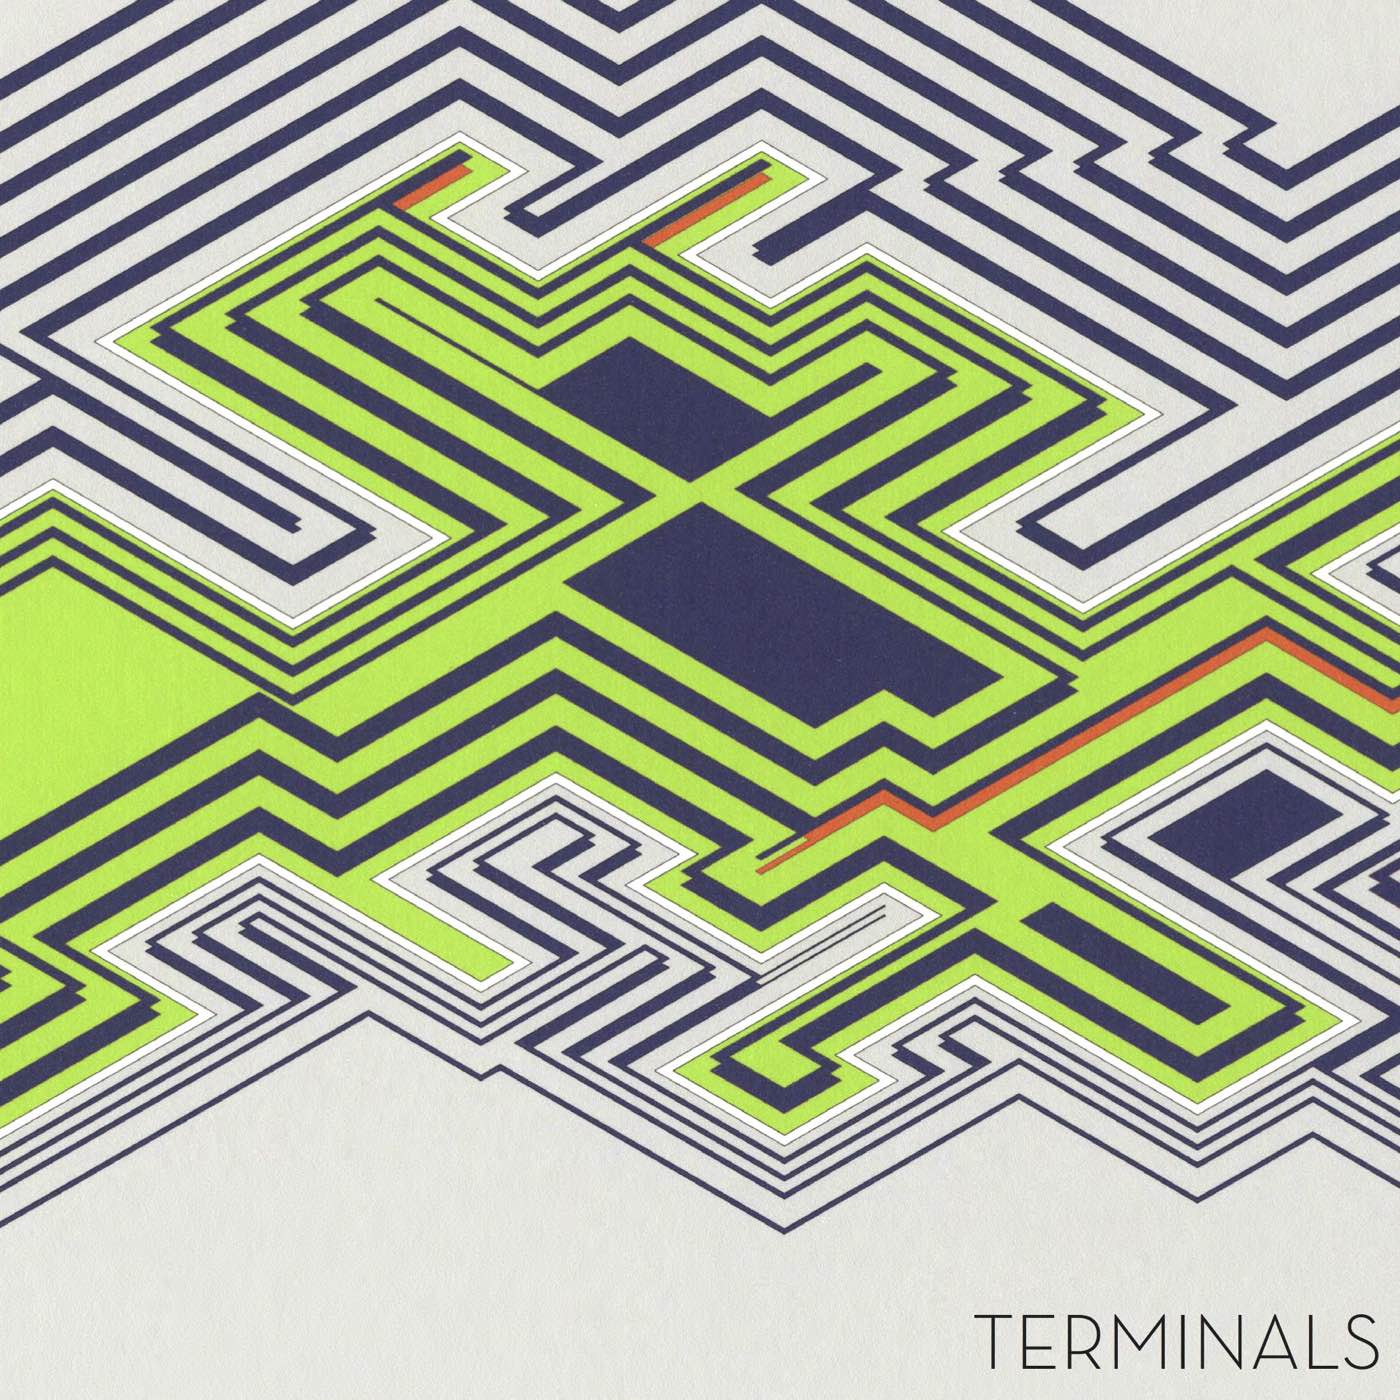 TERMINALS :  five concertos for improvisers  and  SO PERCUSSION   feat. JOHN MEDESKI, NELS CLINE, ZEENA PARKINS, GREG OSBY